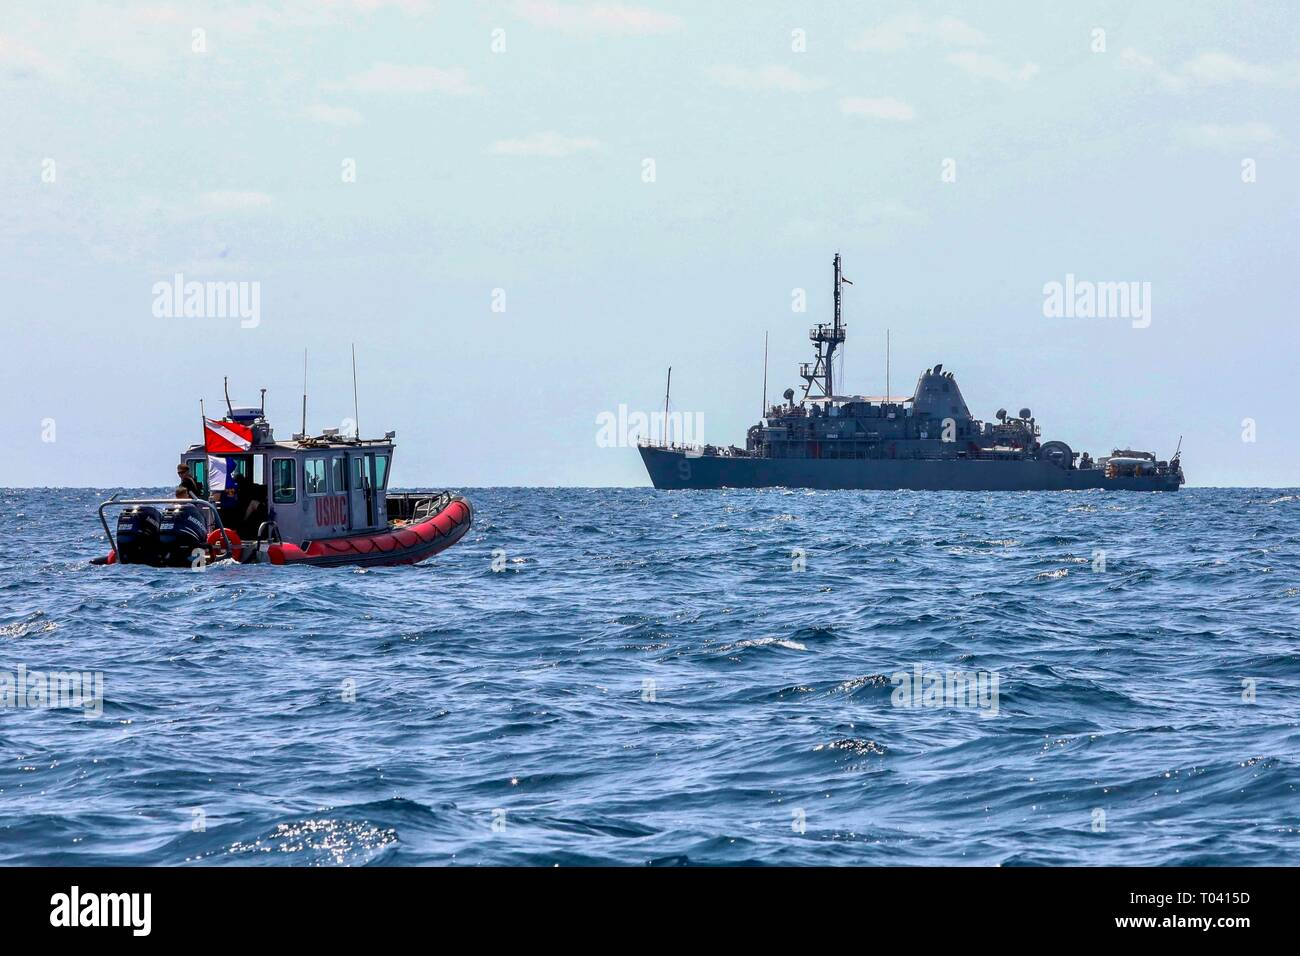 190314-N-AD347-1133 PHILIPPINE SEA (March 14, 2019) Marines assigned to 3rd Reconnaissance Battalion work with the Avenger-class mine countermeasures ship USS Pioneer (MCM 9) to conduct a mine hunting training exercise. Pioneer, part of Mine Countermeasure Squadron 7, is operating in the U.S. 7th Fleet area of operations to enhance interoperability with partners and serve as a ready-response platform for contingency operations. (U.S. Navy photo by LTJG Alexander Fairbanks) Stock Photo